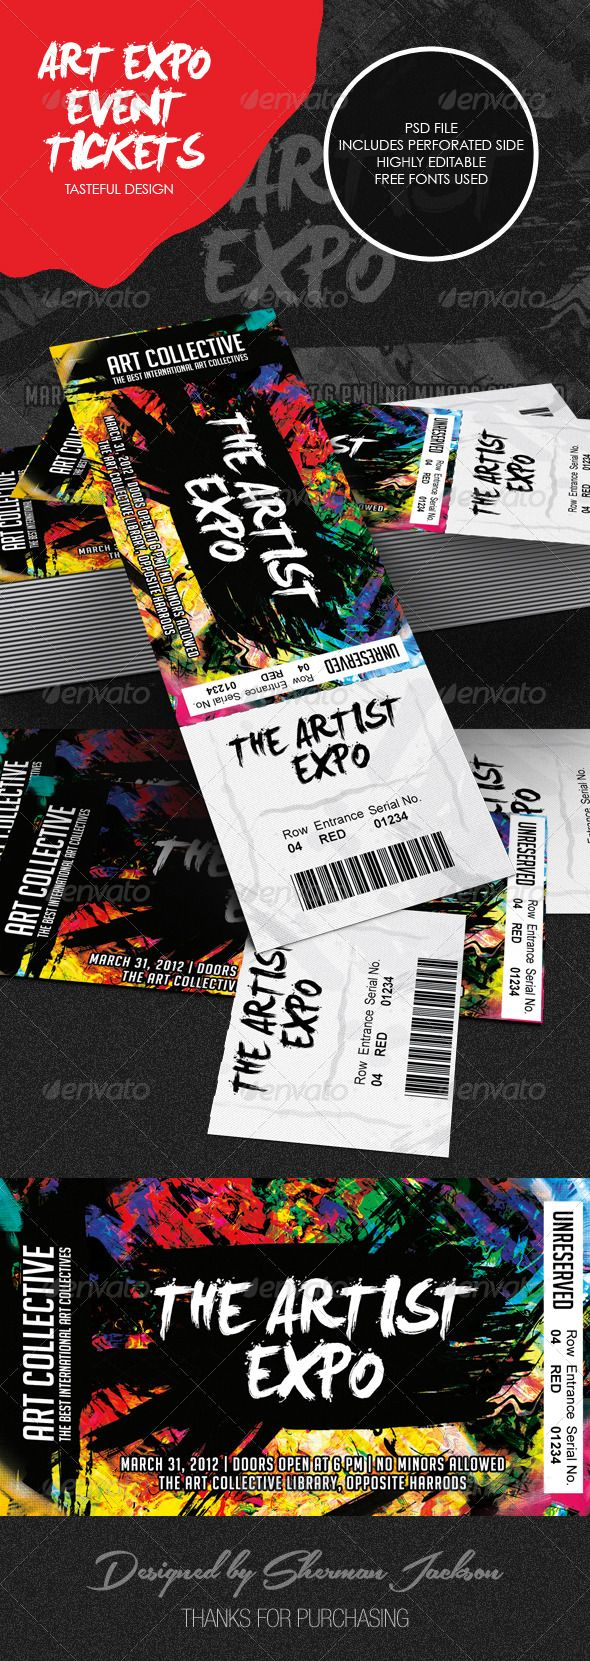 Concert Ticket Template Free Download Mesmerizing 14 Best Layoutstext And Images Images On Pinterest  Brochures .